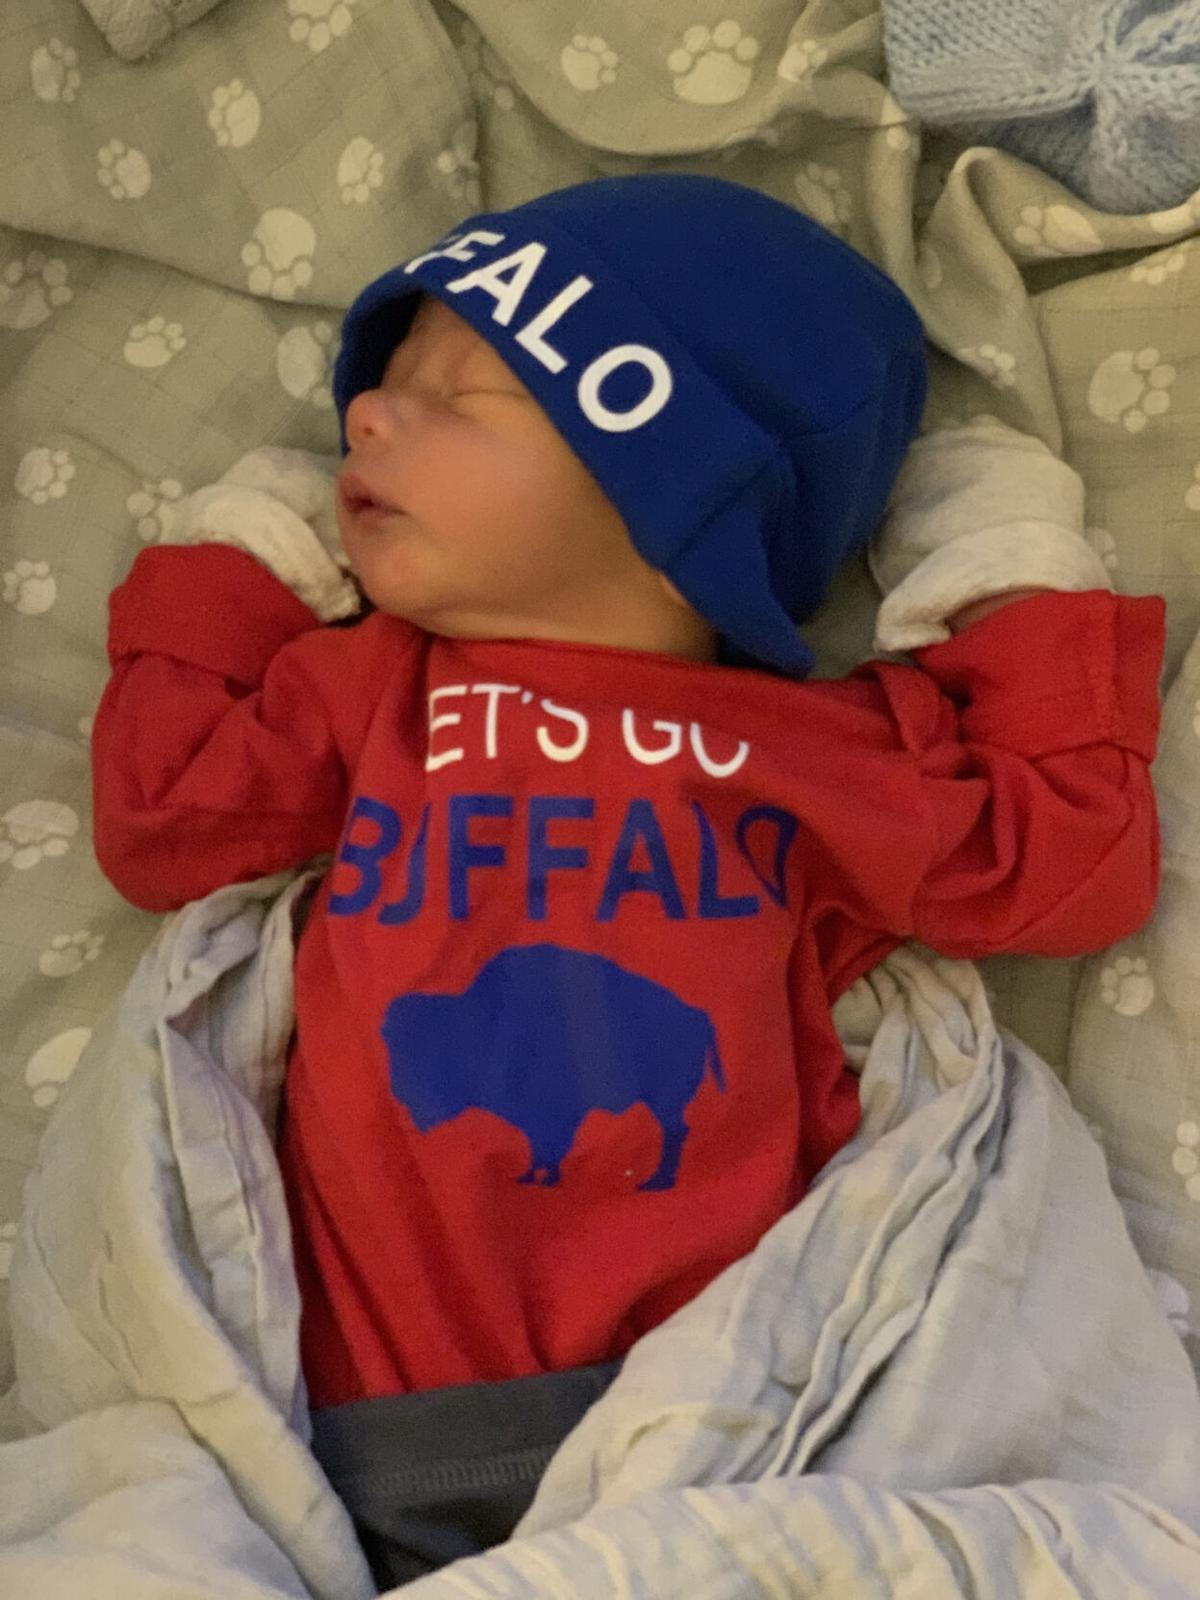 It's a boy! Noyes welcomes Lima boy as first baby of 2021